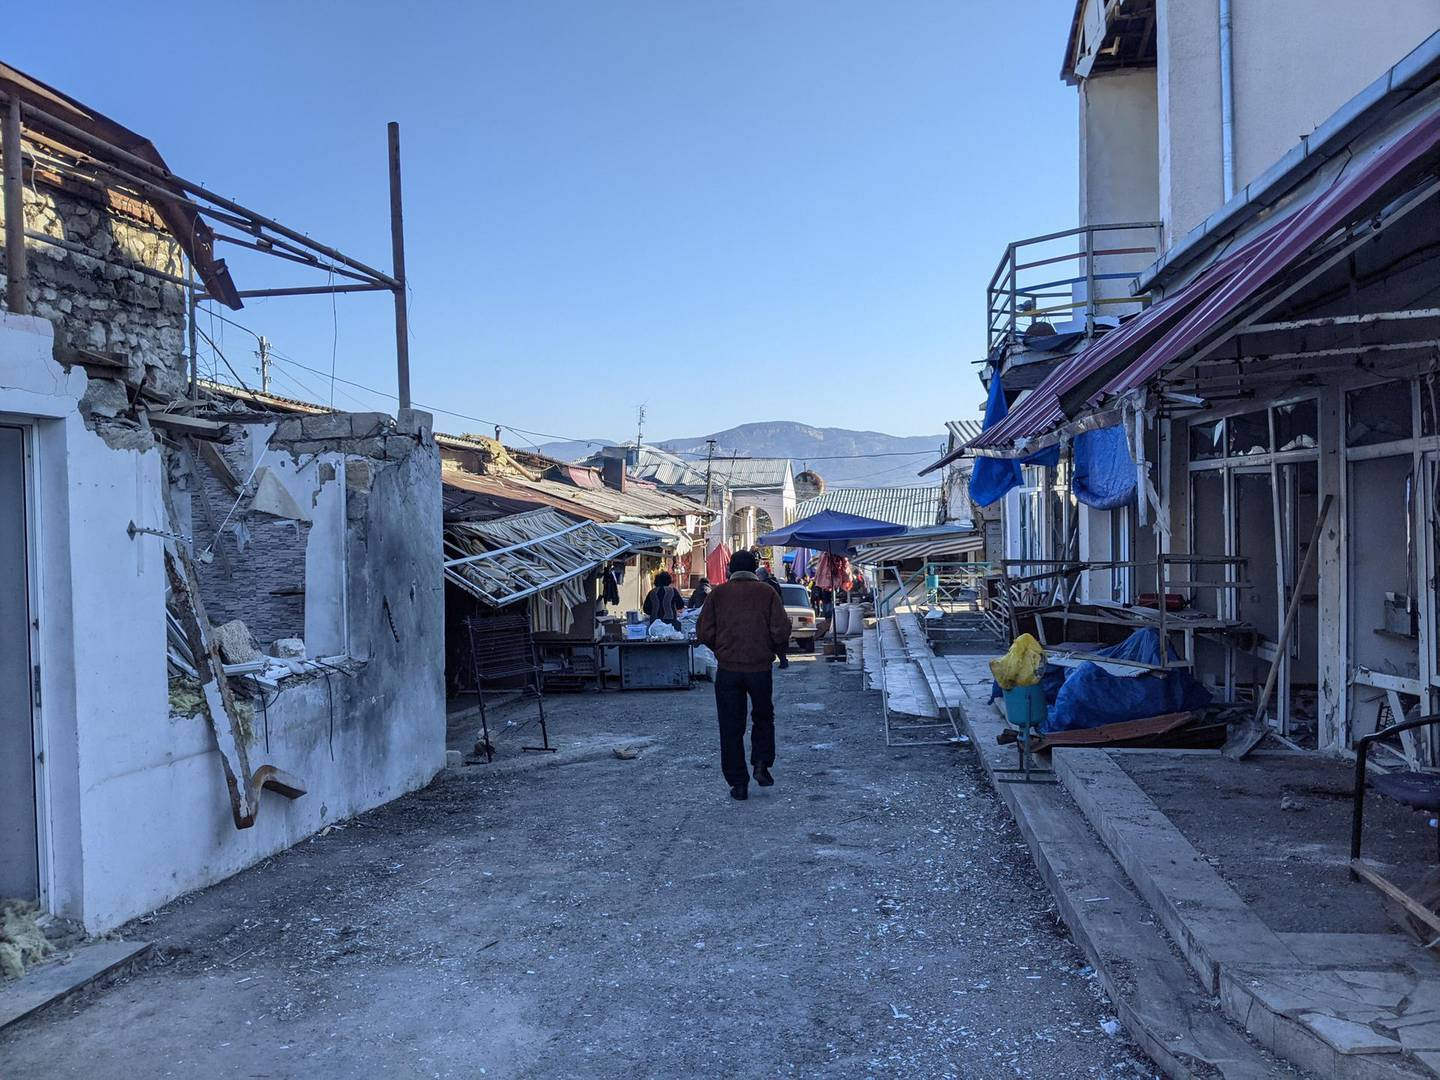 Damage to the Stepanakert market. Neil Hauer for The National